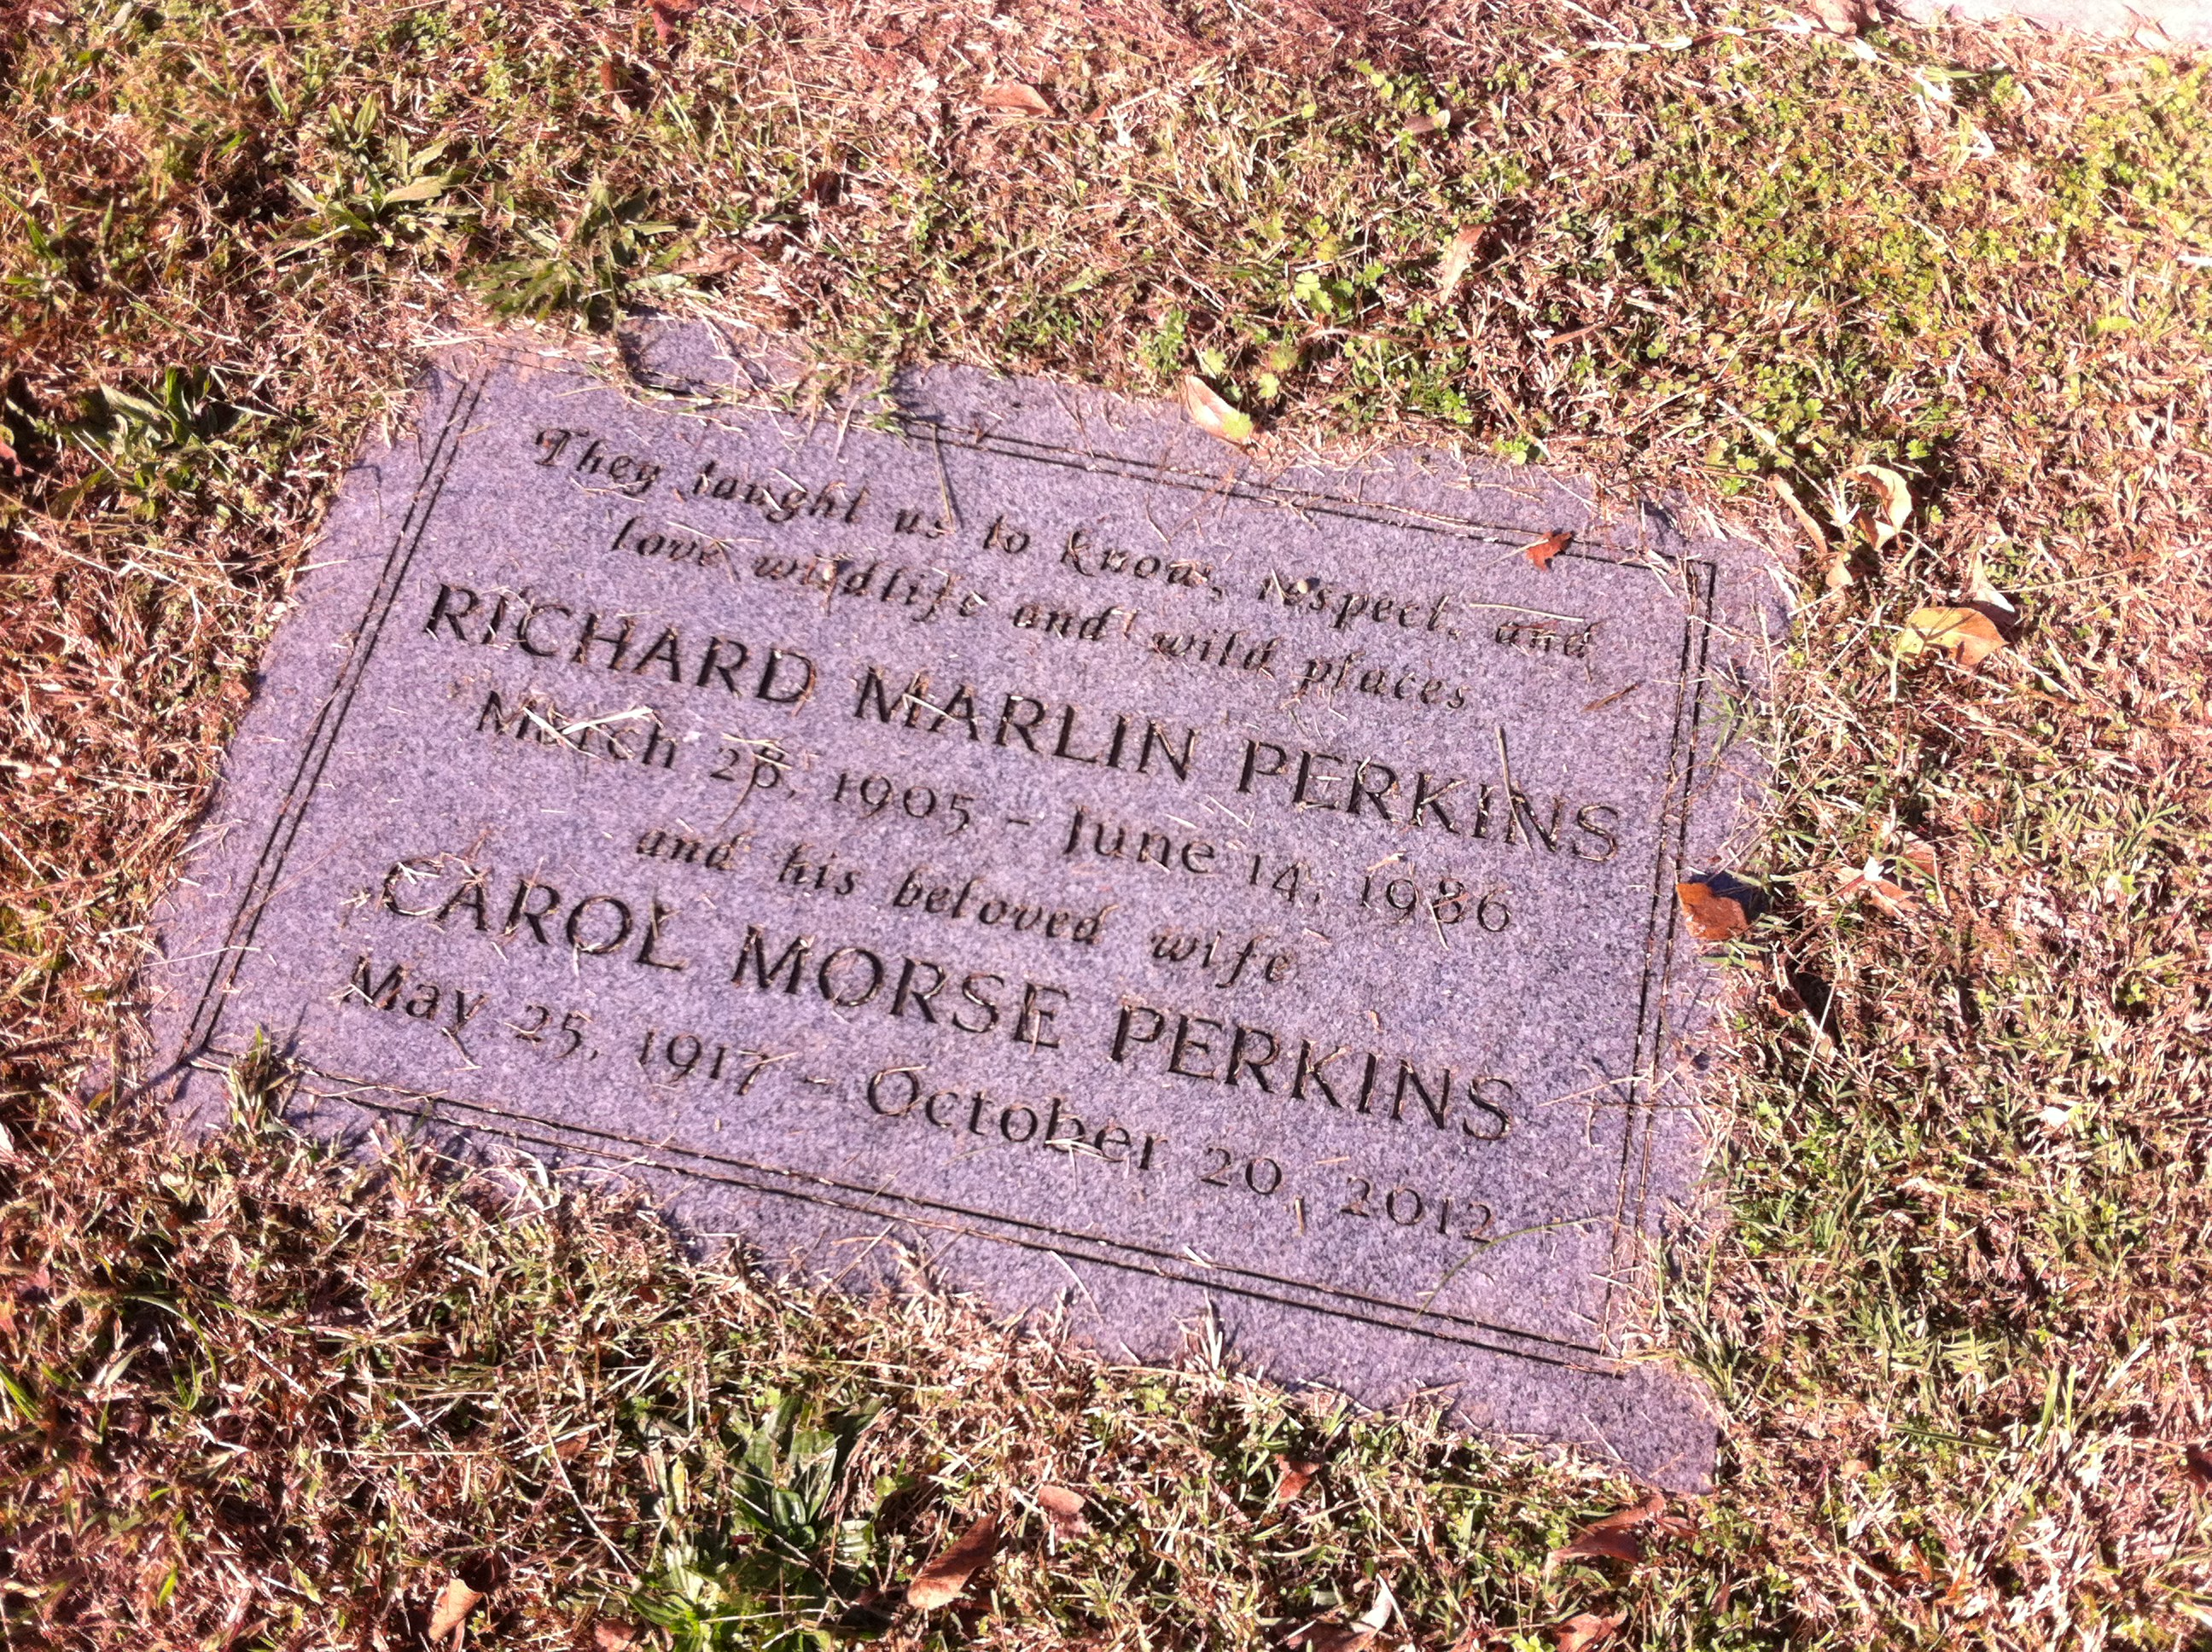 Grave marker for R. Marlin and Carol Perkins in Park Cemetery near the Perkins family stone.